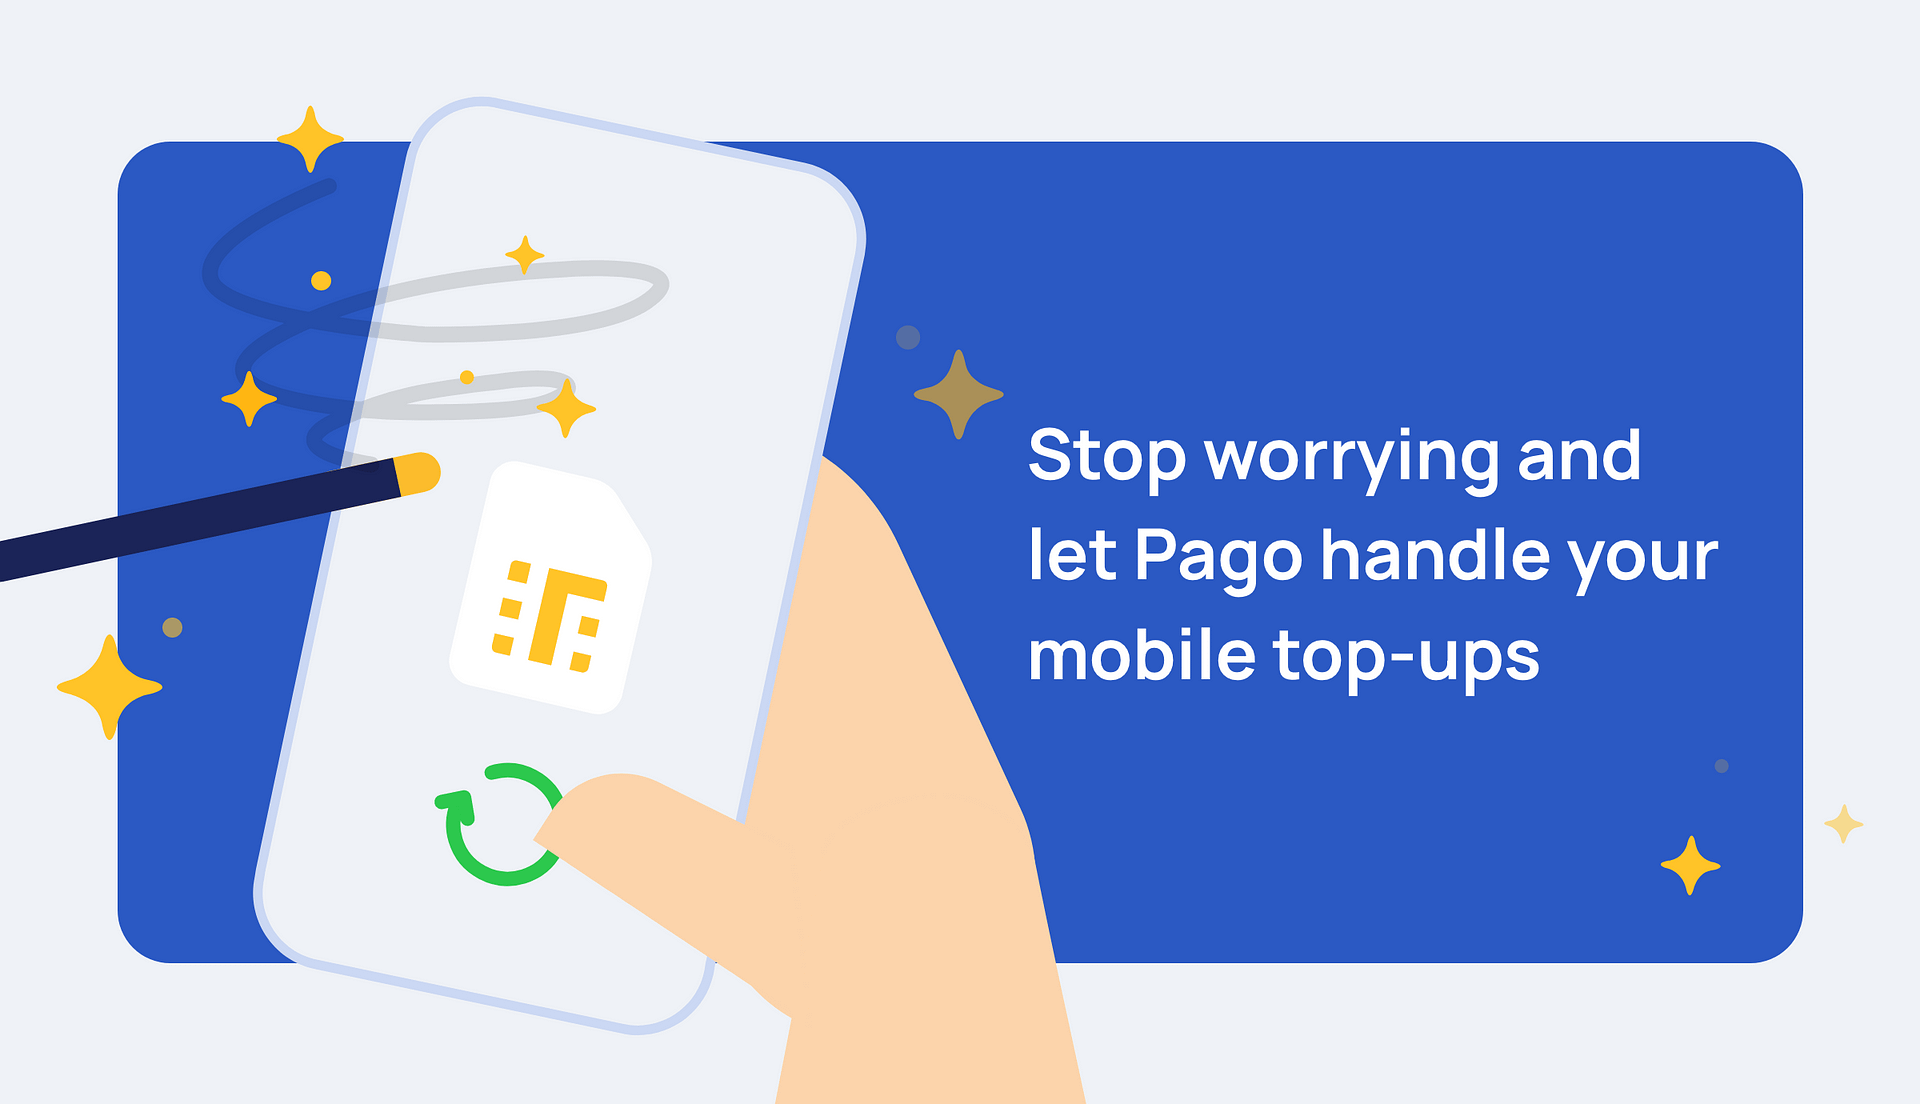 All about mobile top-ups in Pago